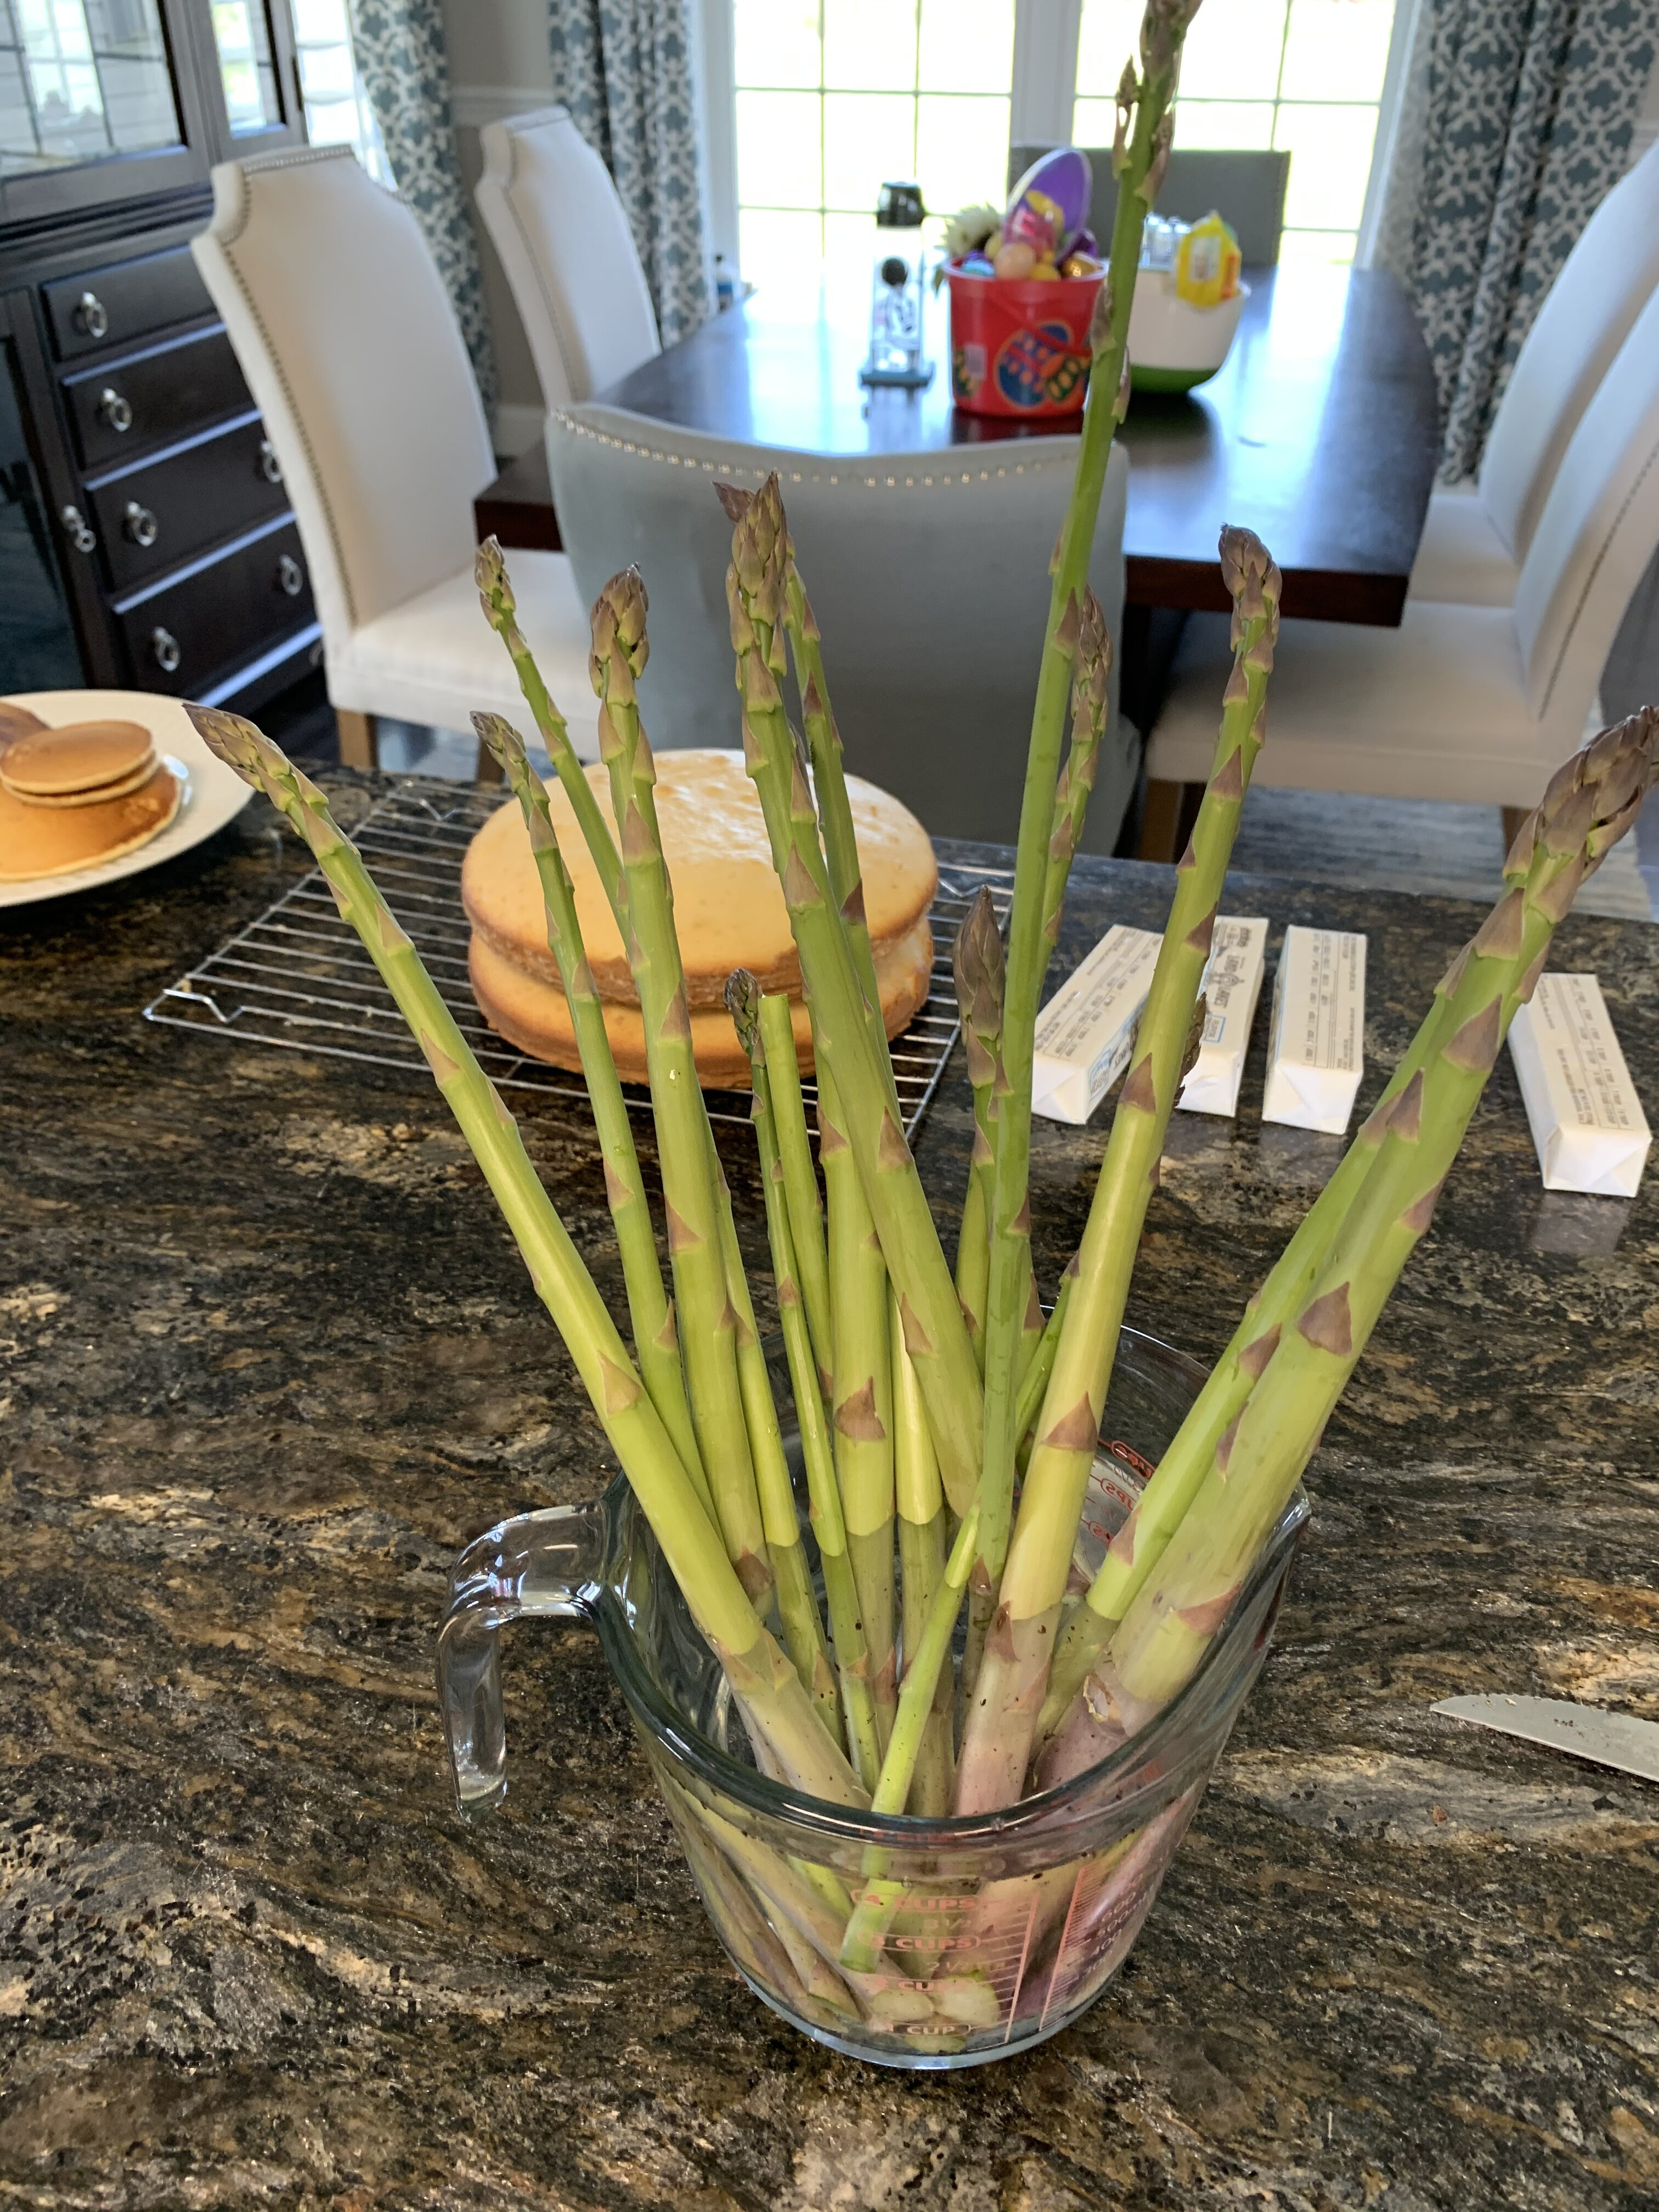 EDB440CE FE4F 49B0 B852 C4104CF544DD How to double or triple your asparagus yield